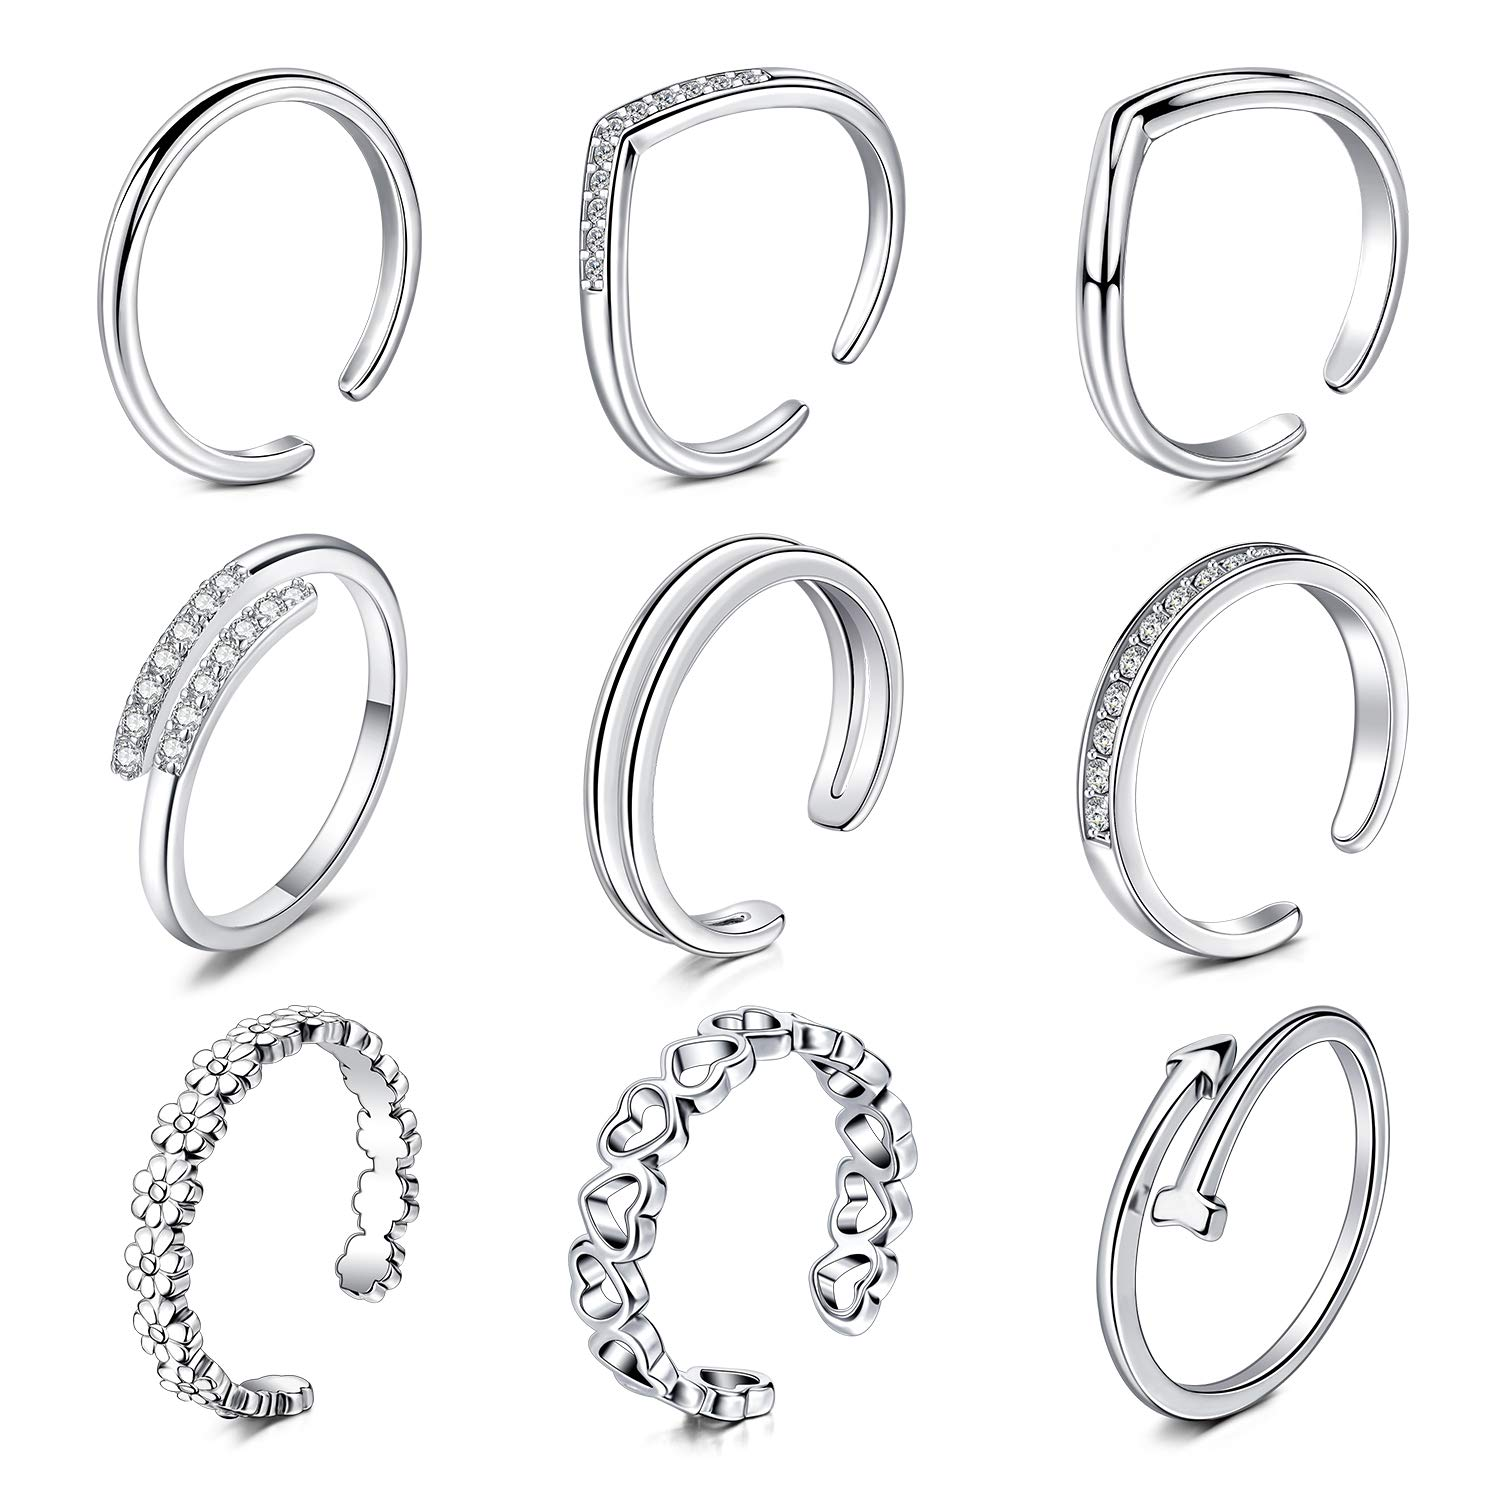 QWALIT 9pcs Toe Rings Silver for Women Girls Rose Gold Open Adjustable Tail Ring Band Flower Knot Simple Fingers Joint Knuckle Hoop Ring Wave Foot Jewelry for Sandals